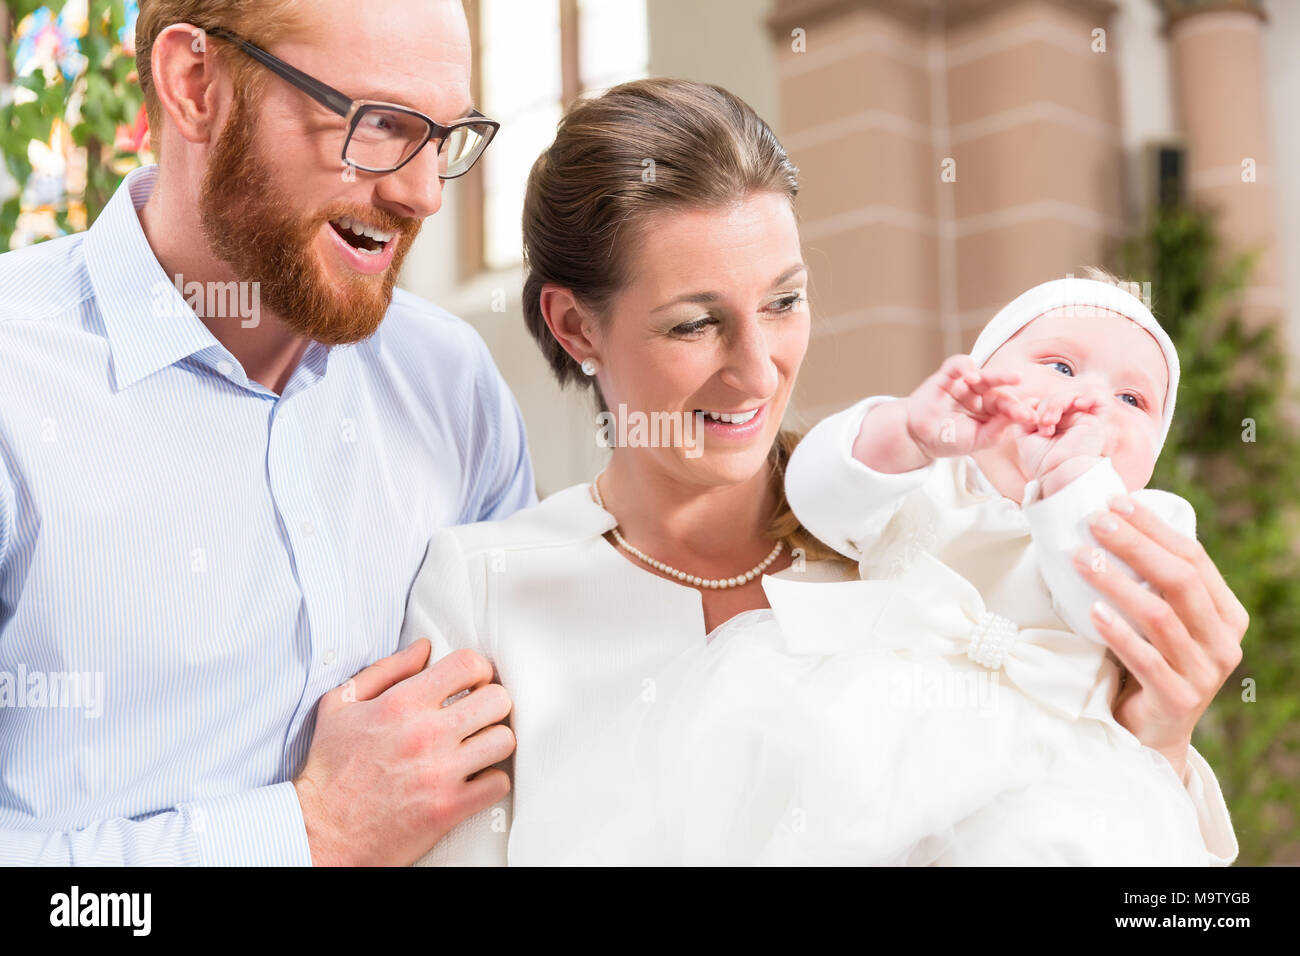 Parents with baby at christening in church - Stock Image